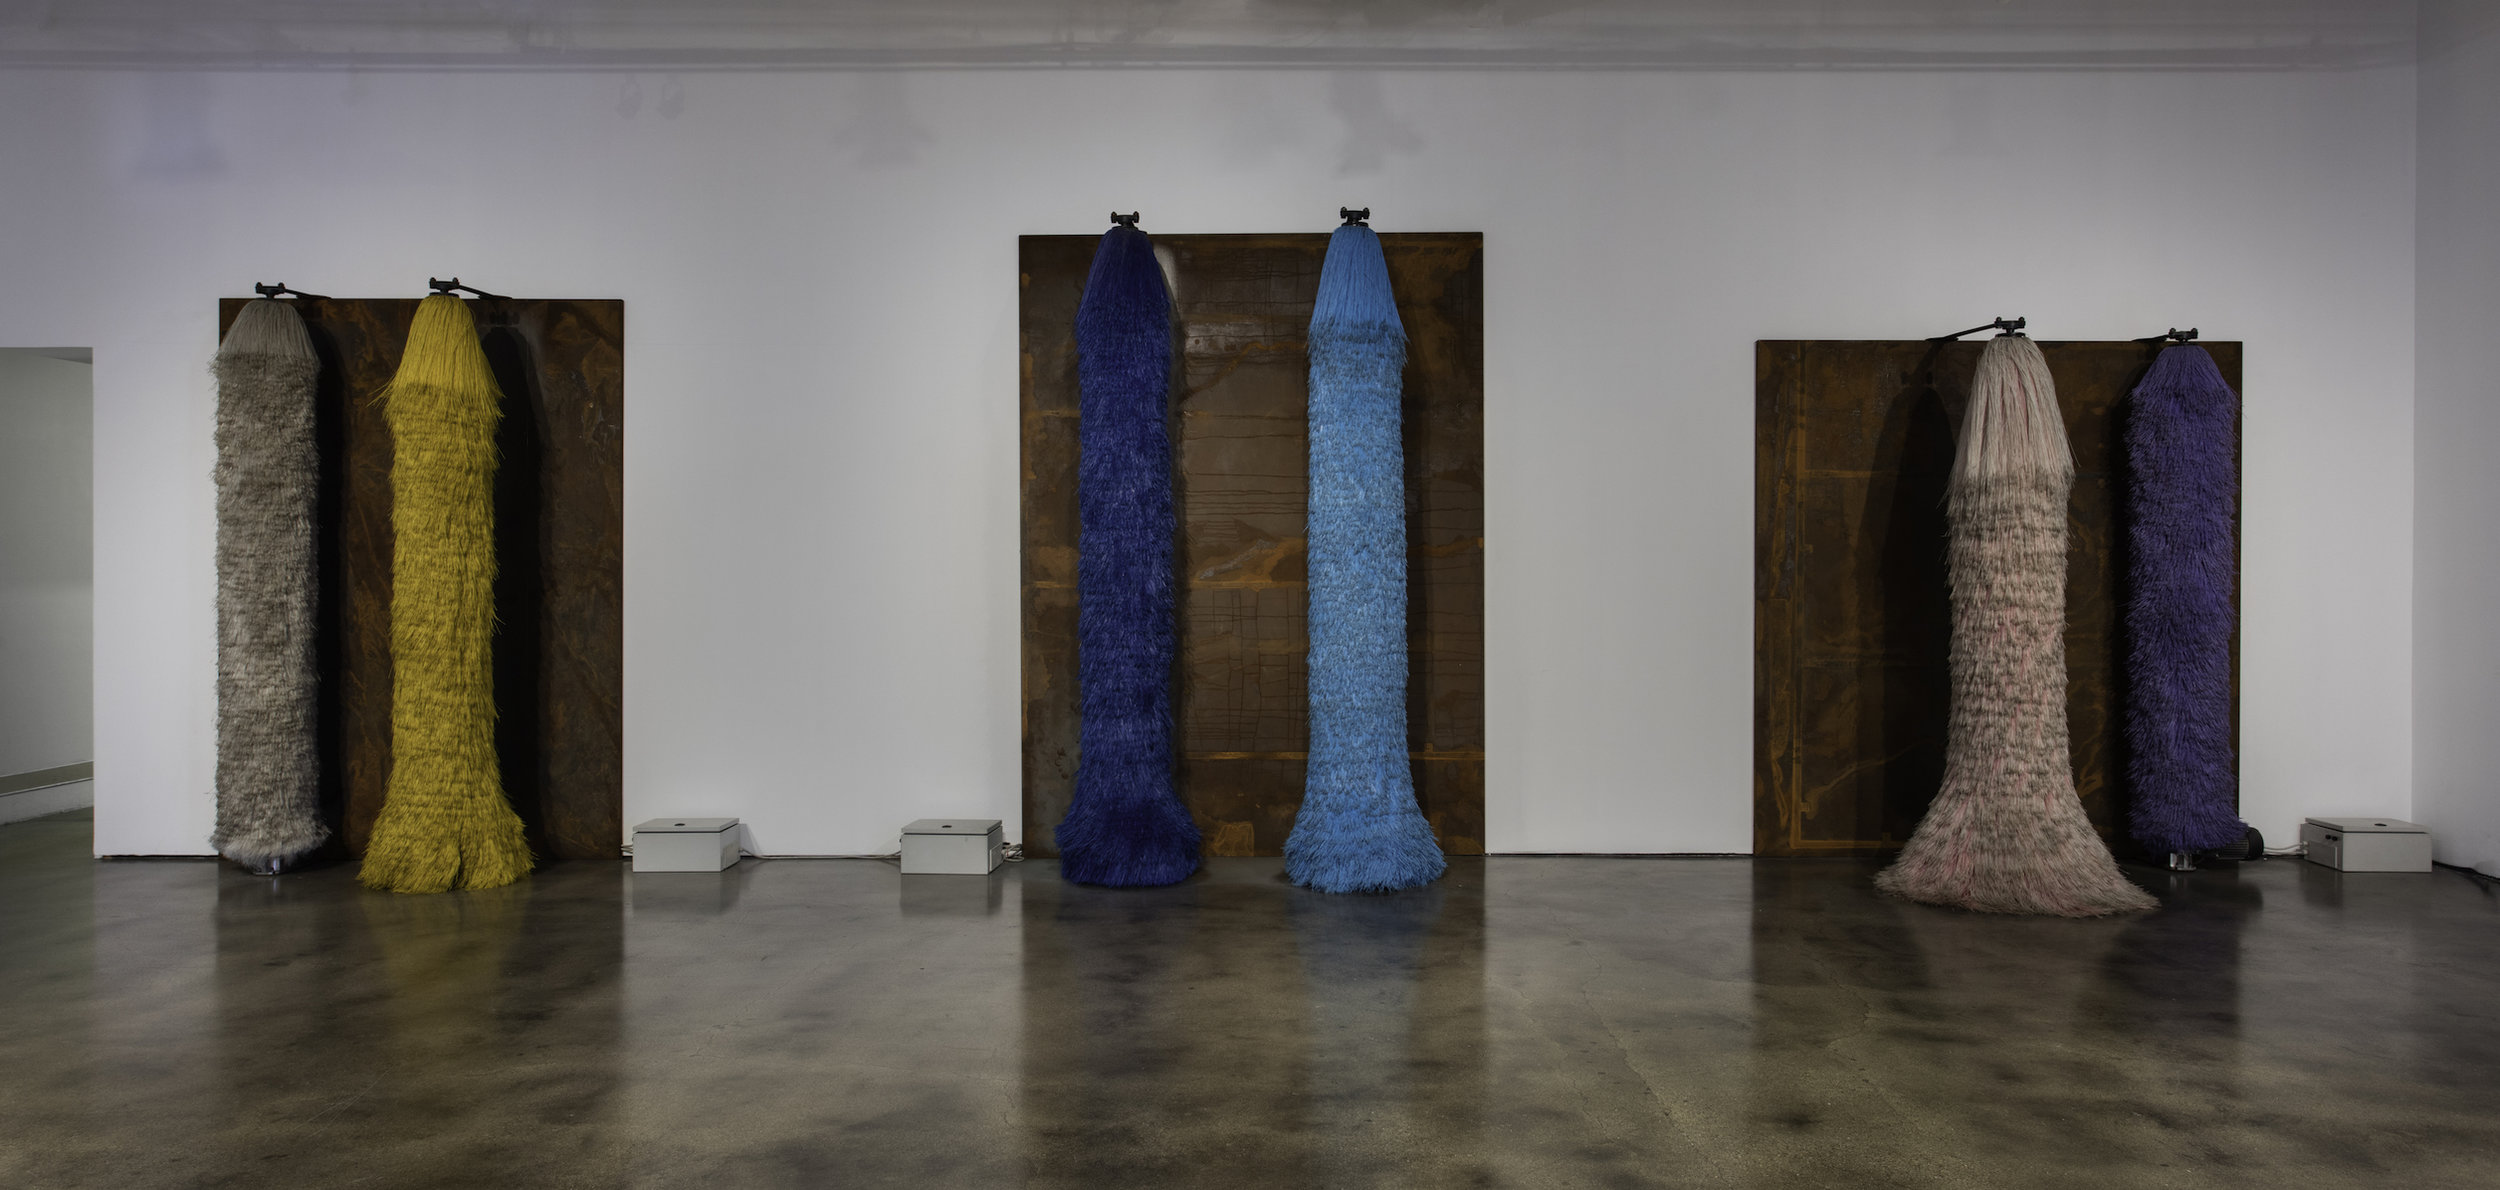 Lara Favaretto,  Coppie Semplici / Simple Couples , 2009, Car wash brushes, iron slabs, motors, electrical boxes, wires, site specific installation, Courtesy Museum of Contemporary Art Santa Barbara. Photo: Brian Forrest